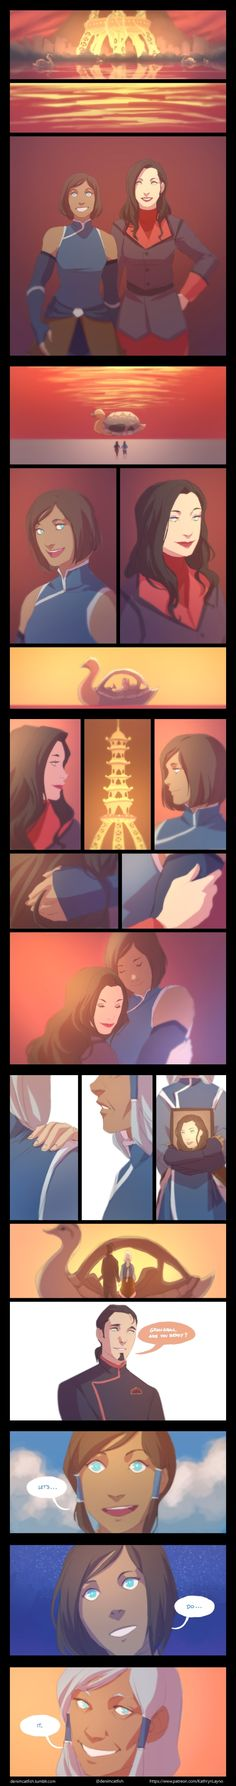 I didn't need my heart anyway :'( | KorrAsami / Korra & Asami Sato | Avatar the legend of korra lok | Canon Couple